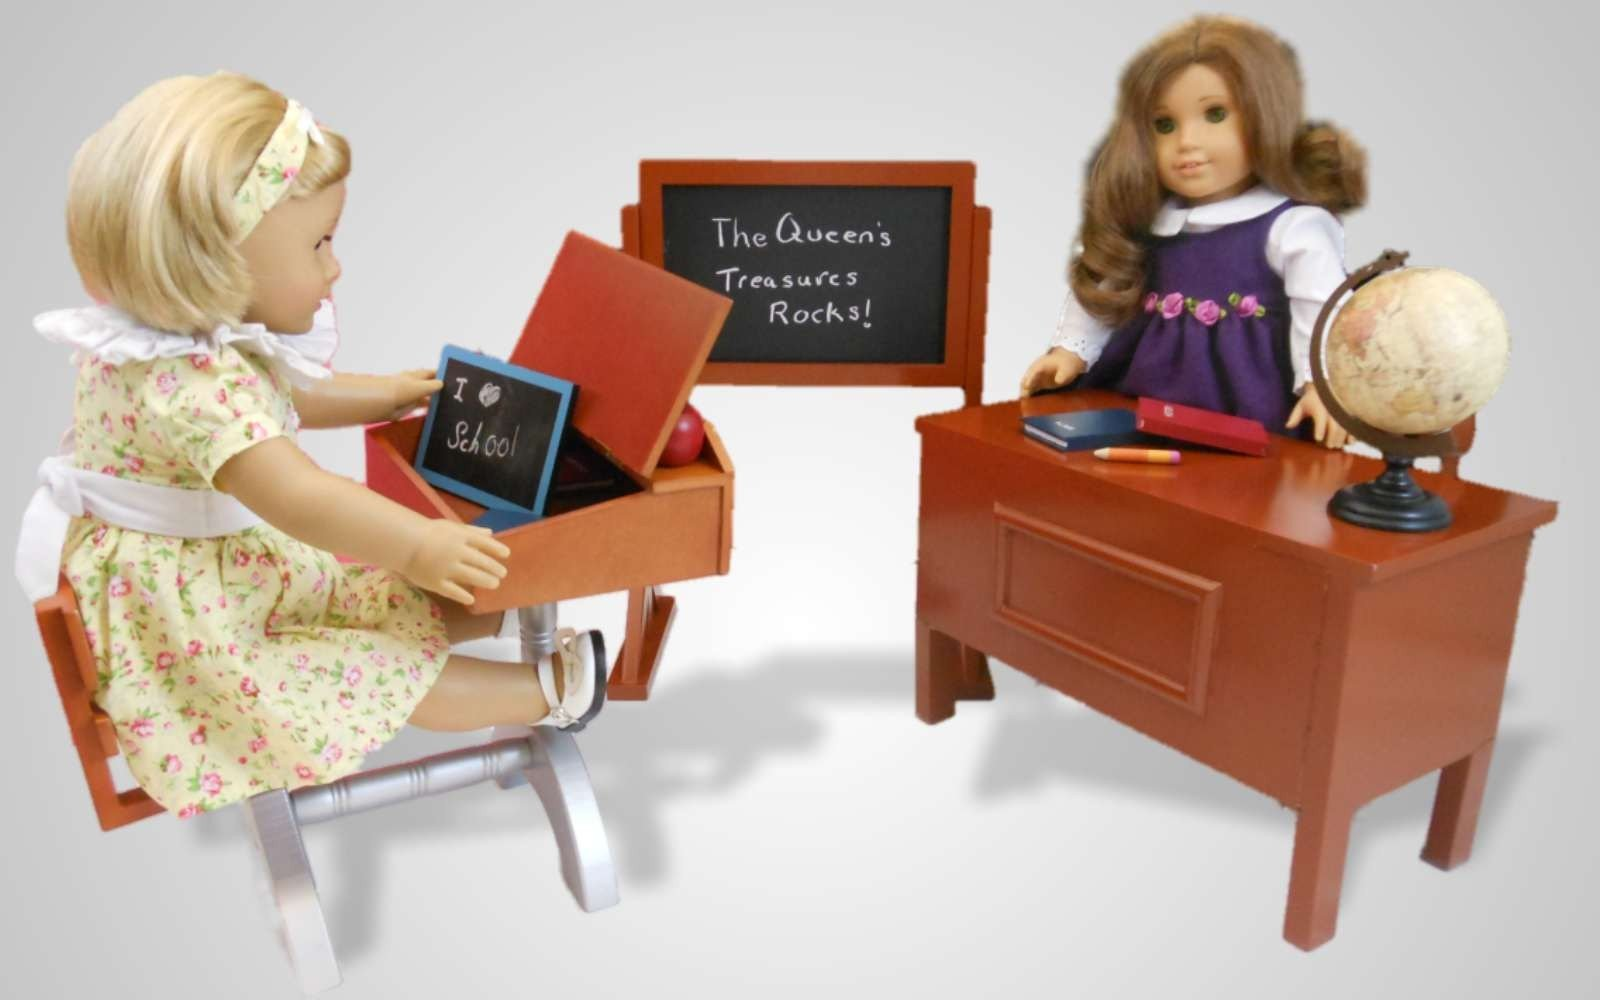 School Teacher Desk And Play Set For 18 American Girl Dolls Fits 18 Doll Furniture Accessories